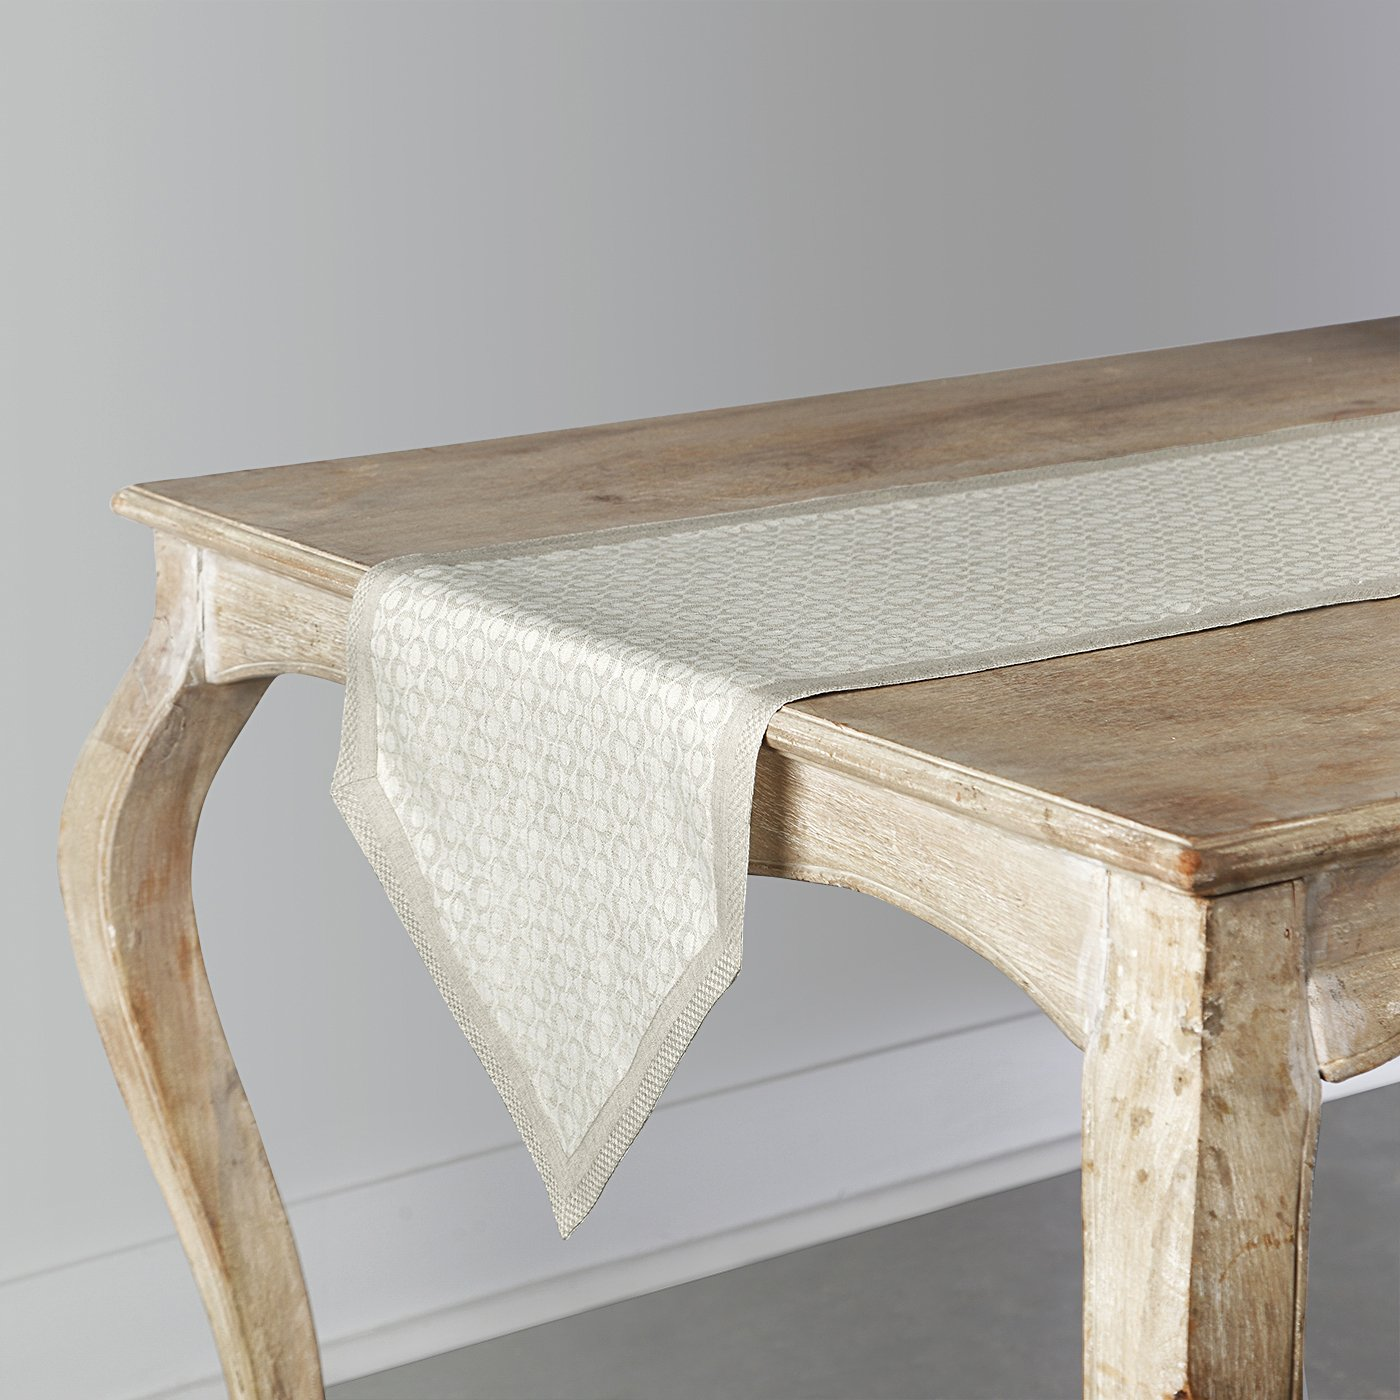 Handcrafted Jacquard Pure Linen Pointed Ends Table Runner - ChristmasTablescapeDecor.com